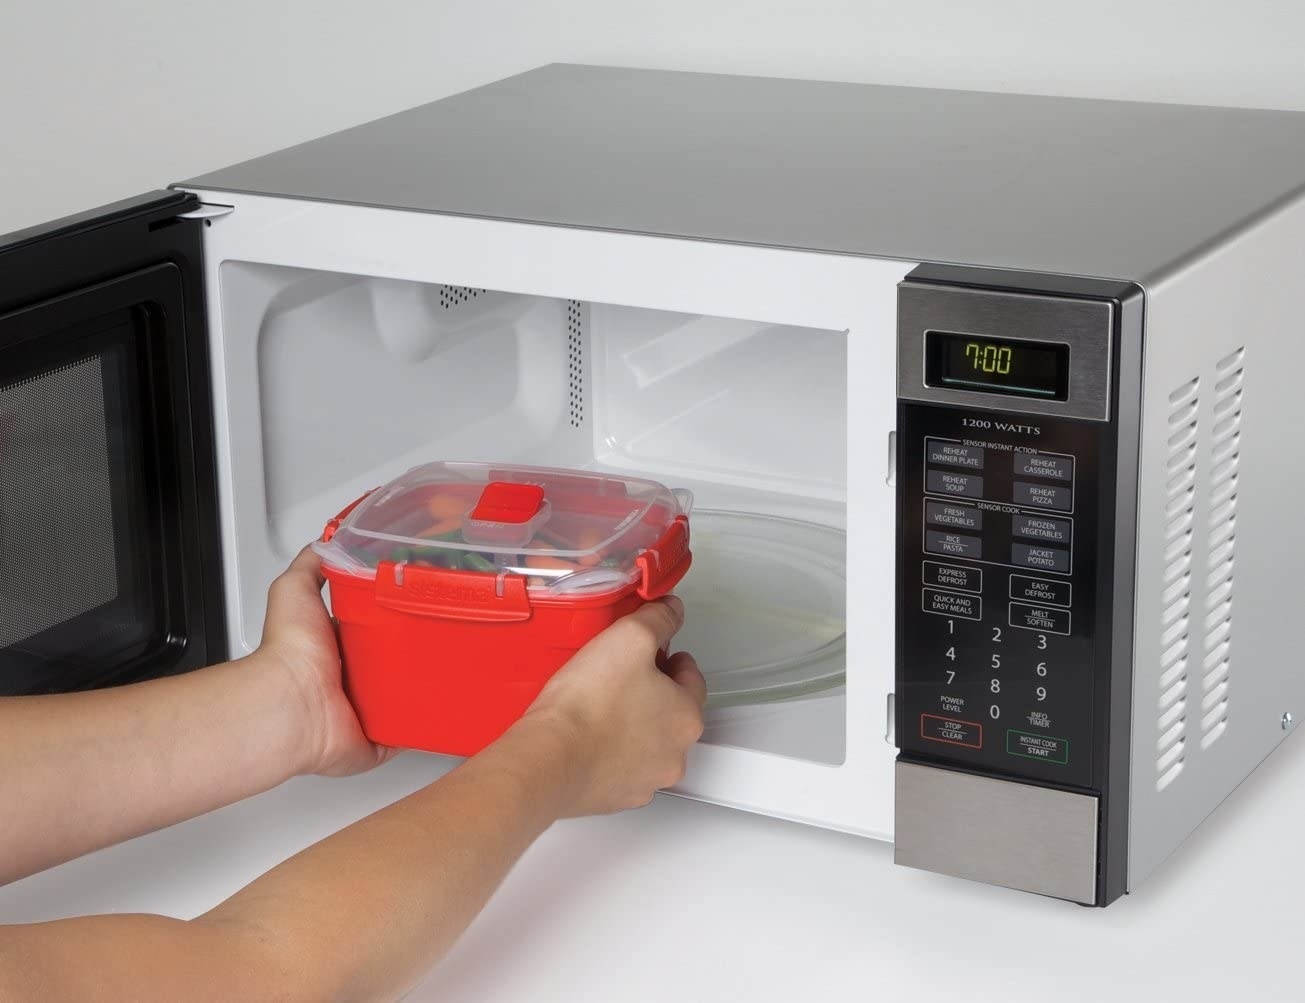 Hands putting the red steaming container and lid in a microwave